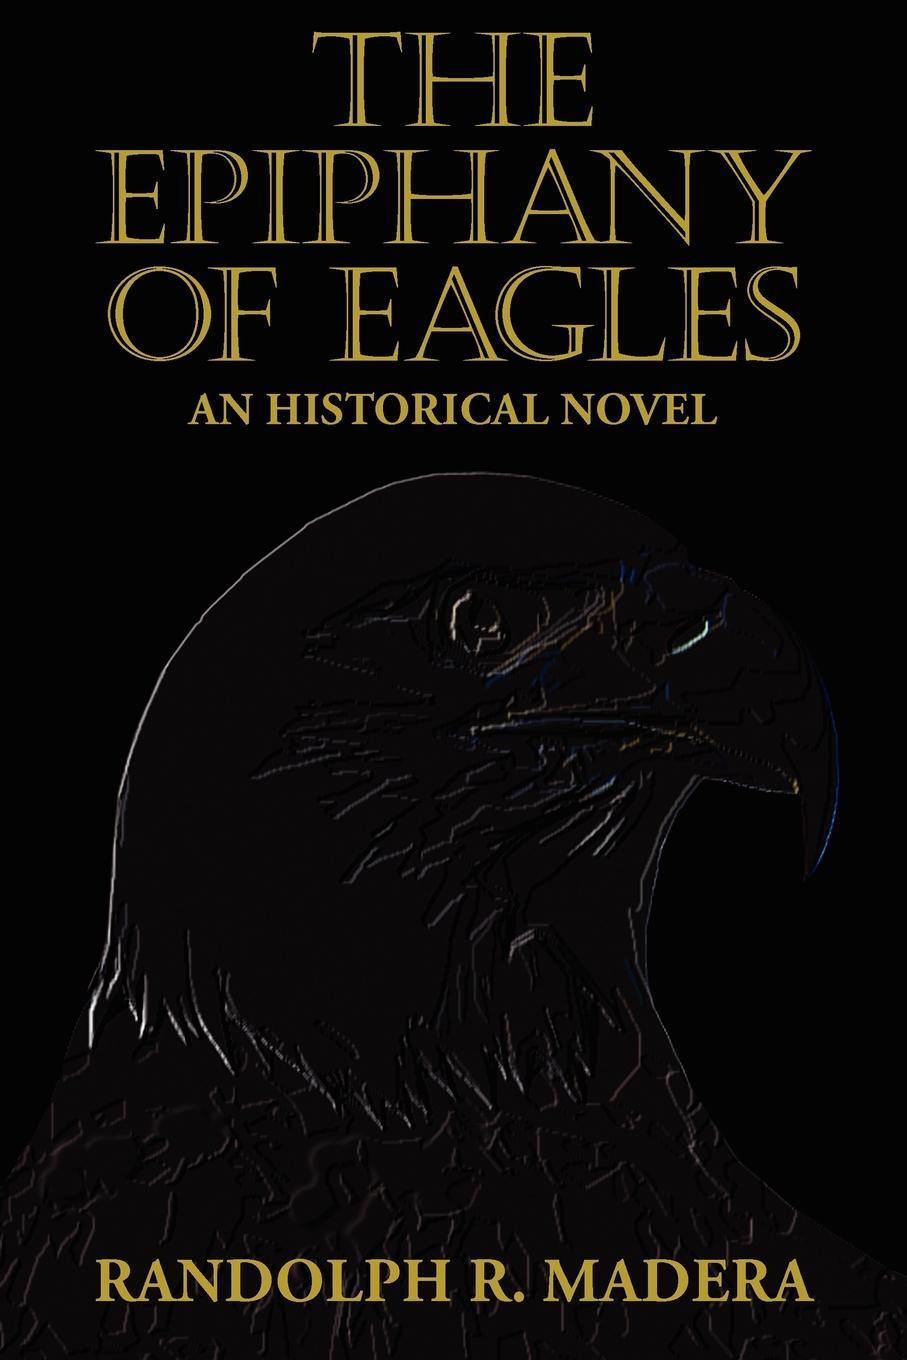 The Epiphany of Eagles